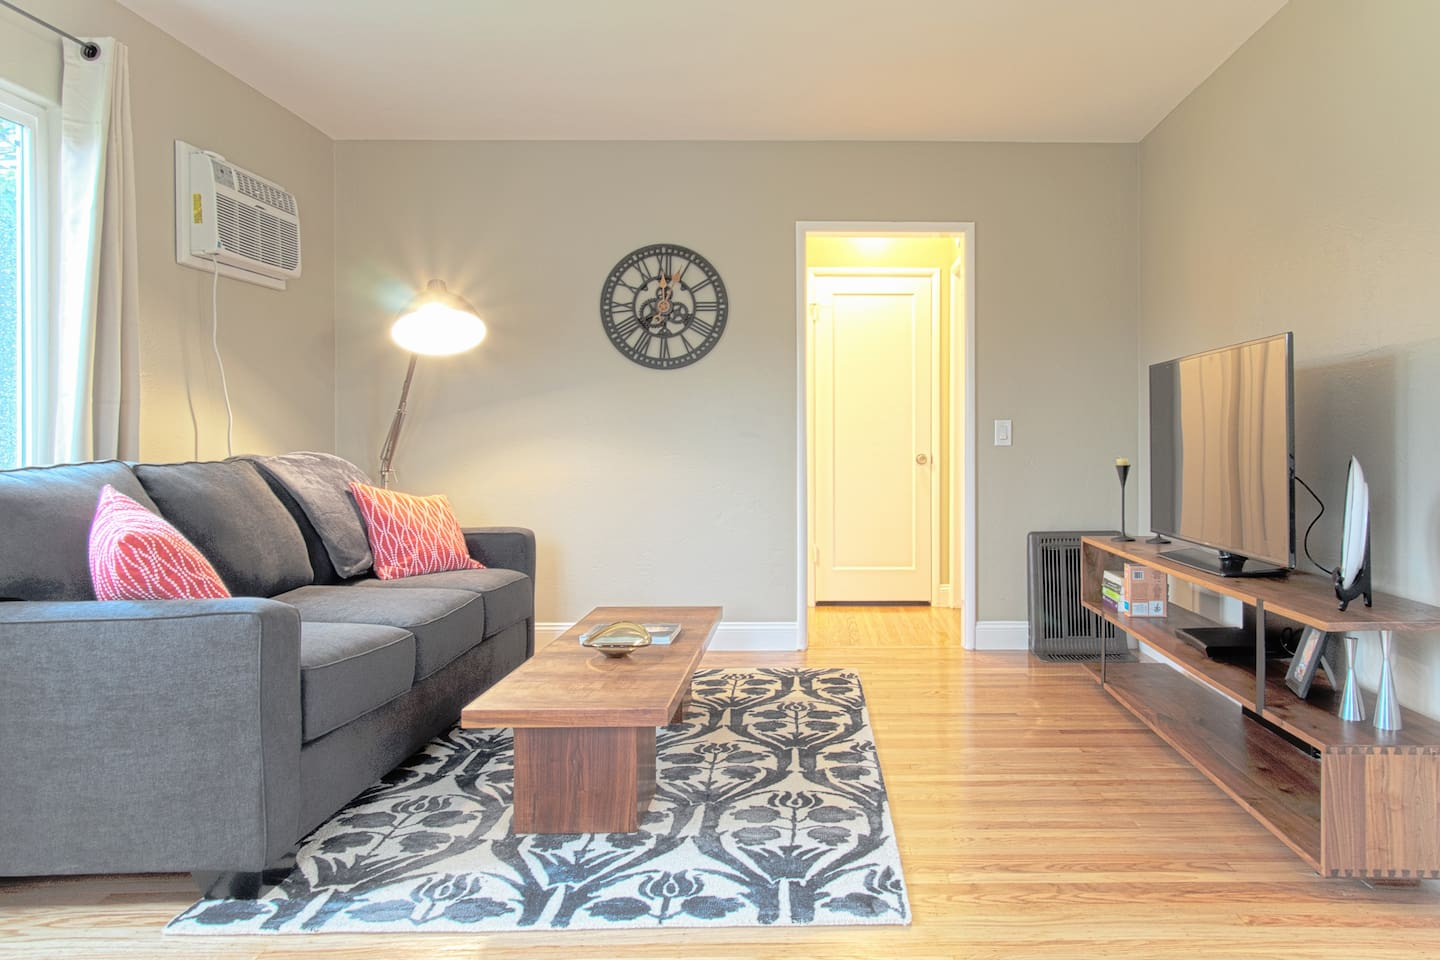 Living Room area with sofa bed with queen size pullout mattress, Air Conditioning, Gas Furnace